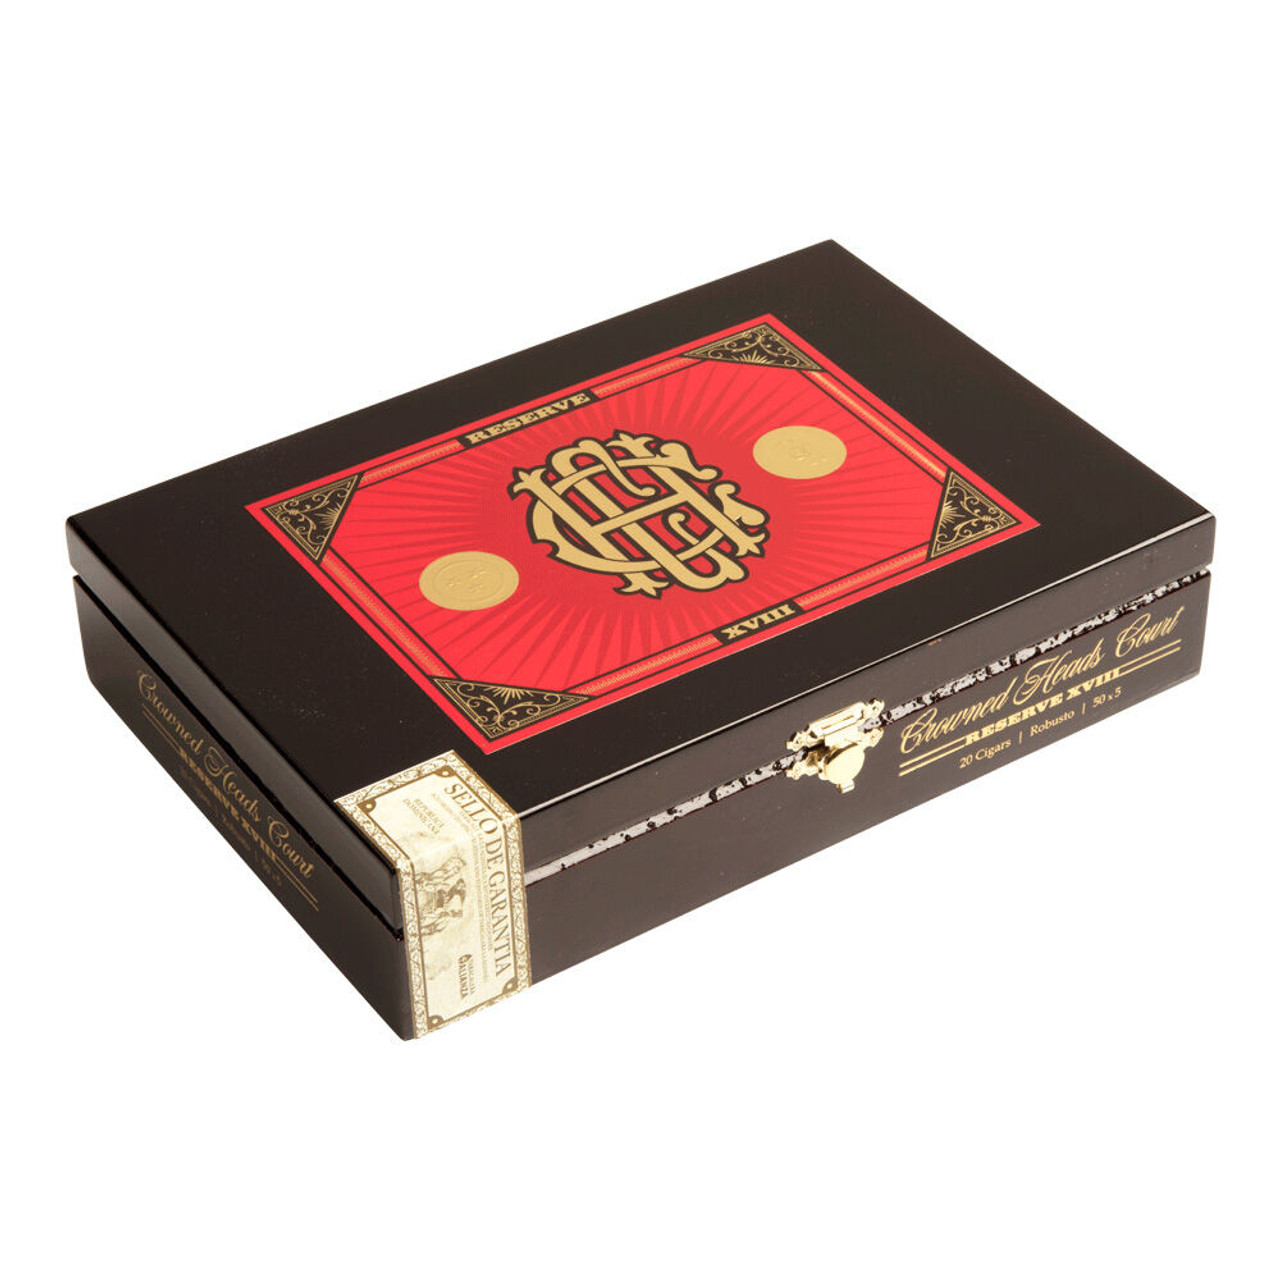 Crowned Heads CHC Reserve XVIII Robusto Cigars - 5.0 x 50 (Box of 20)